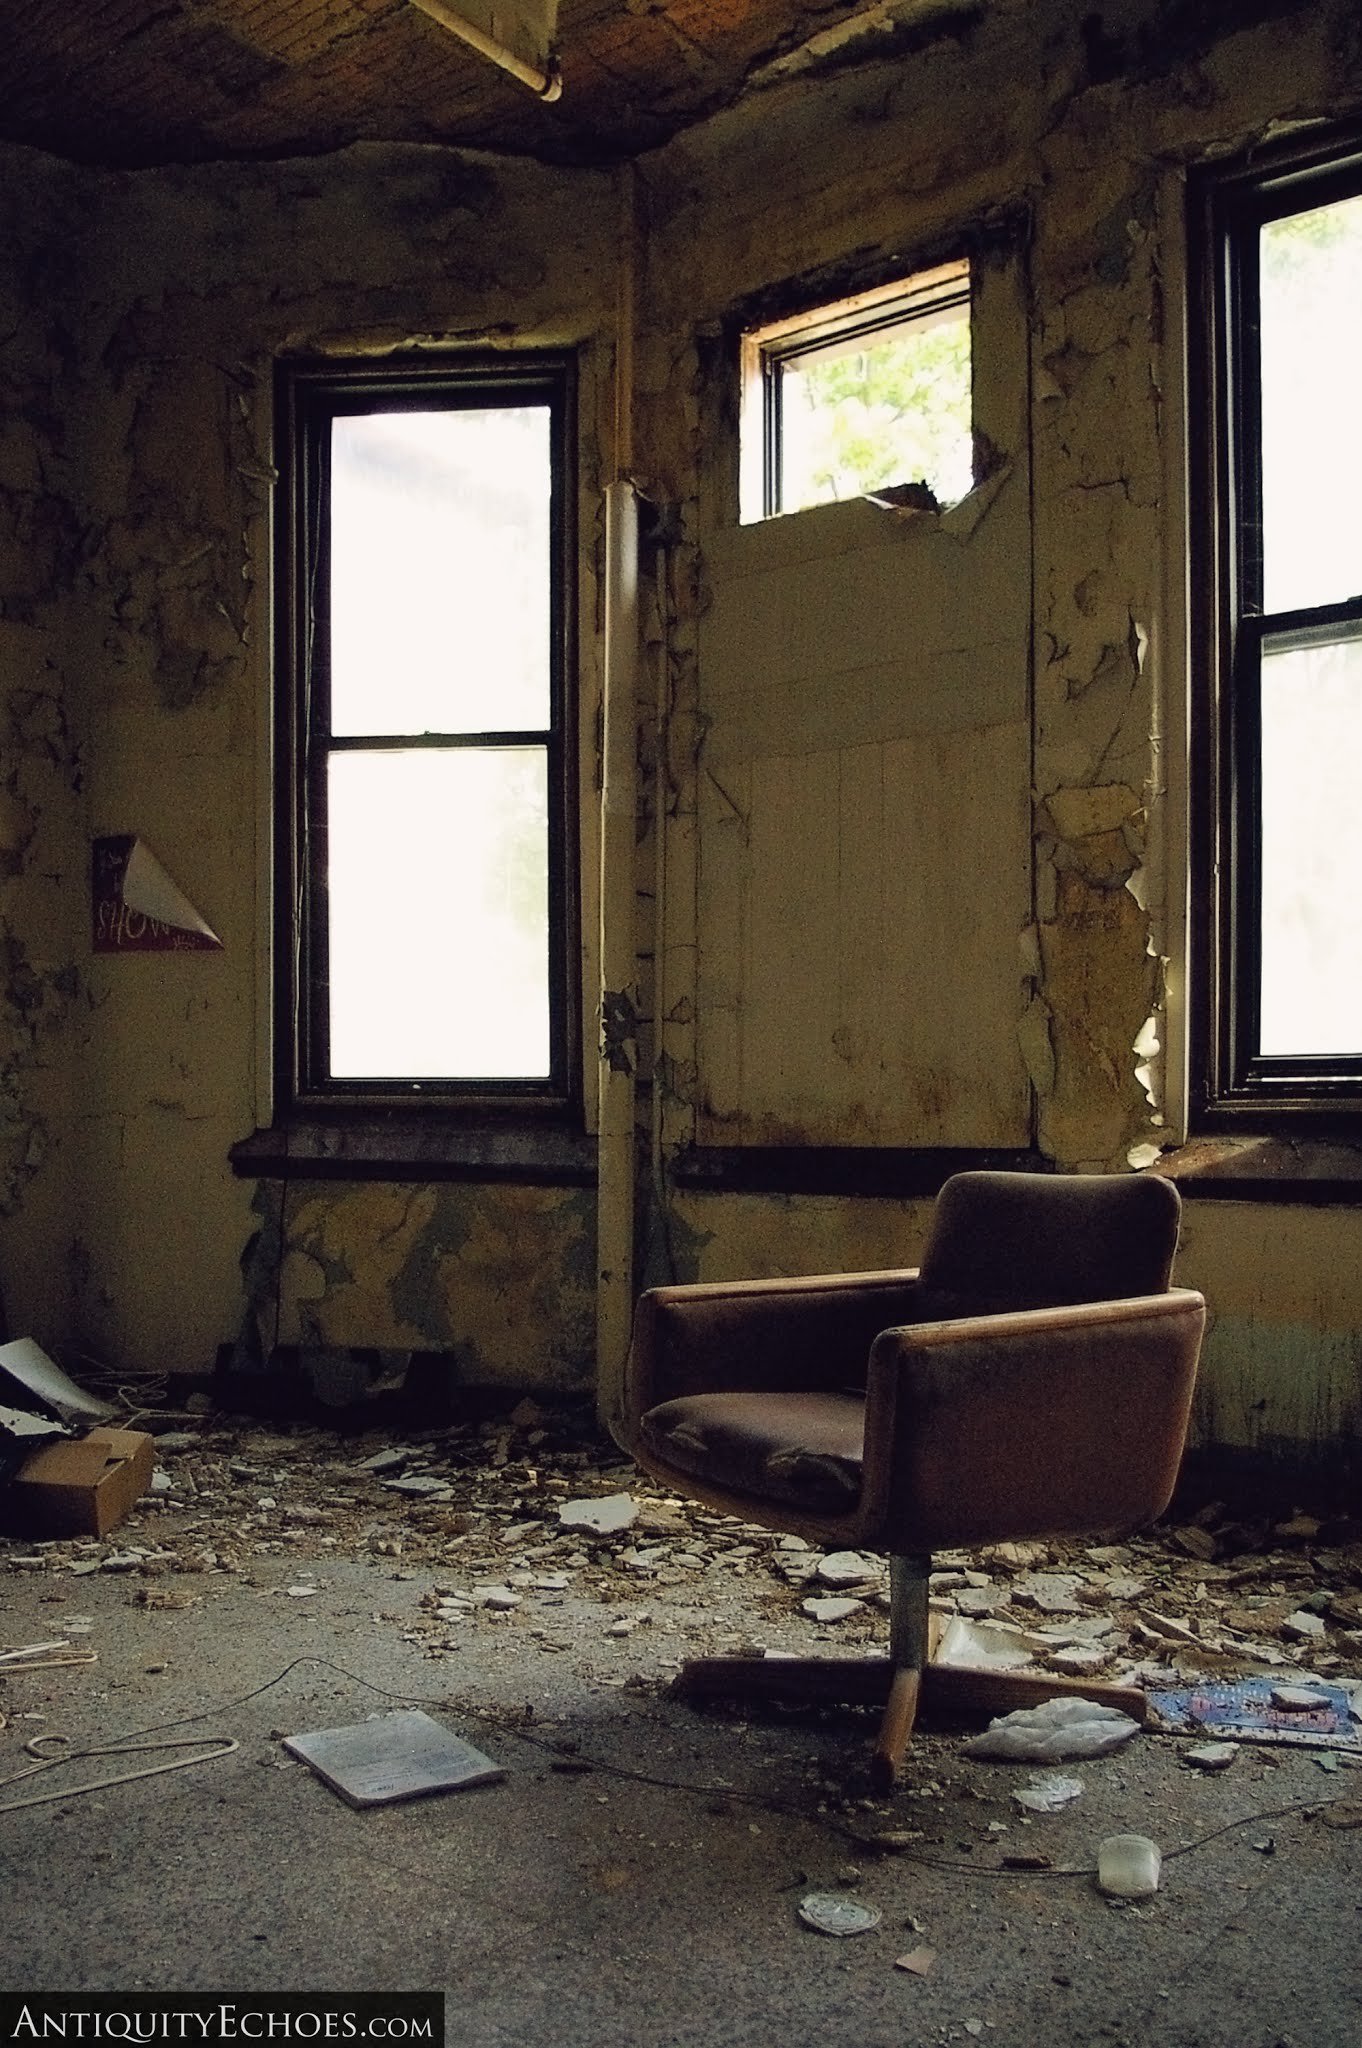 Overbrook Asylum - Lonely Ward Chair